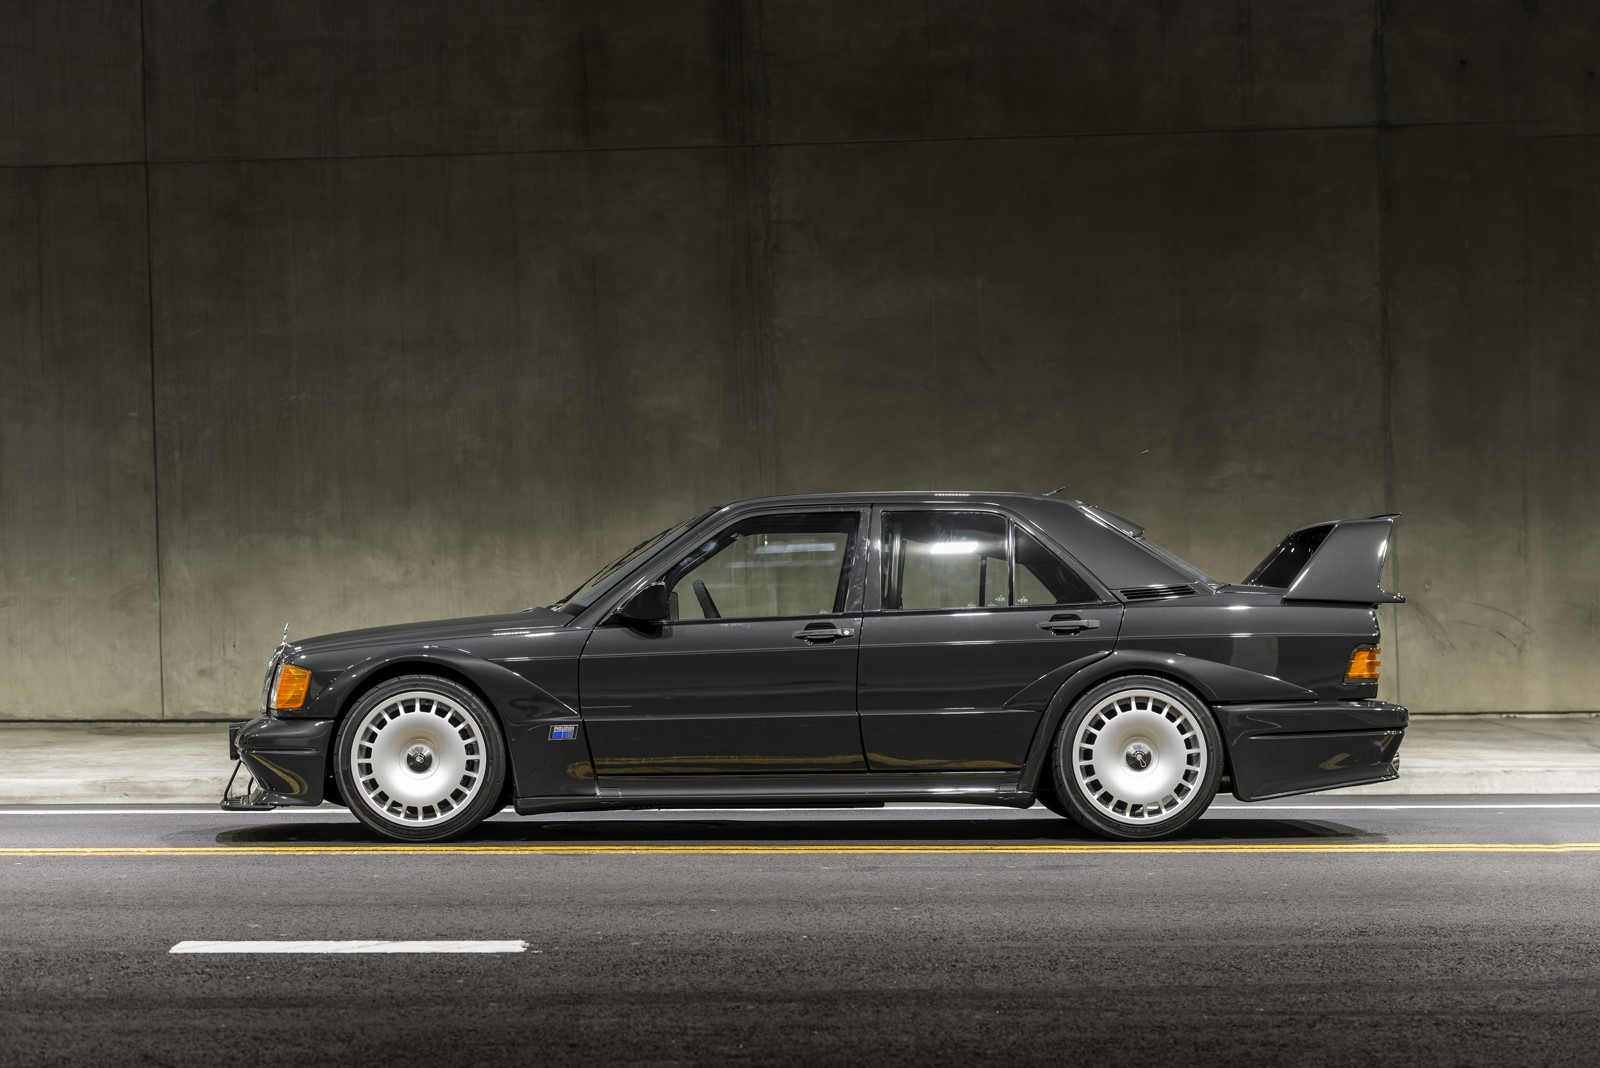 Mercedes 190E 2.5-16 Evo II in auction (8)